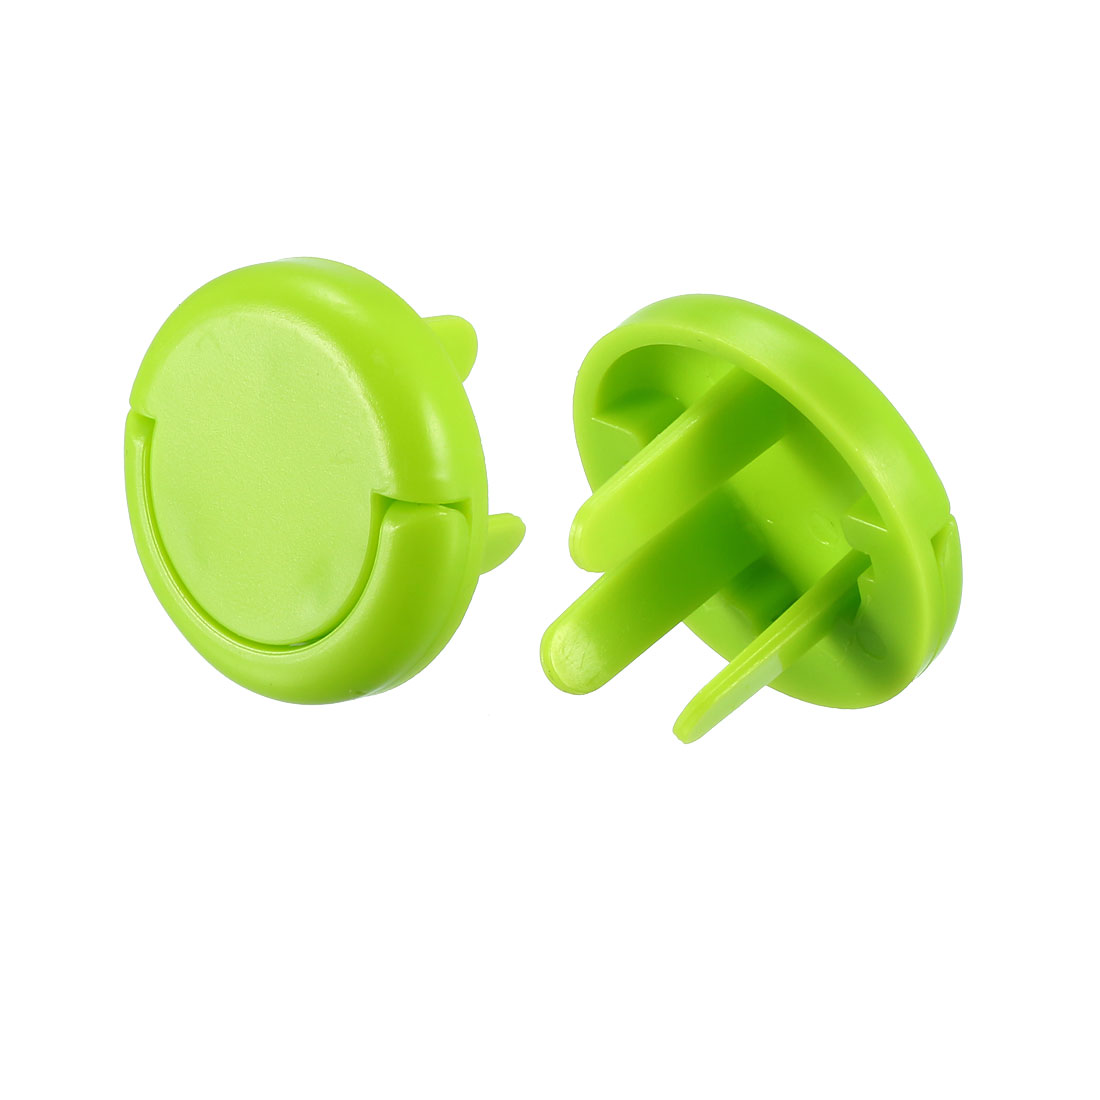 AU Standard 3 Prong Power Socket Covers Durable Electrical Proofing Green 40 Pcs